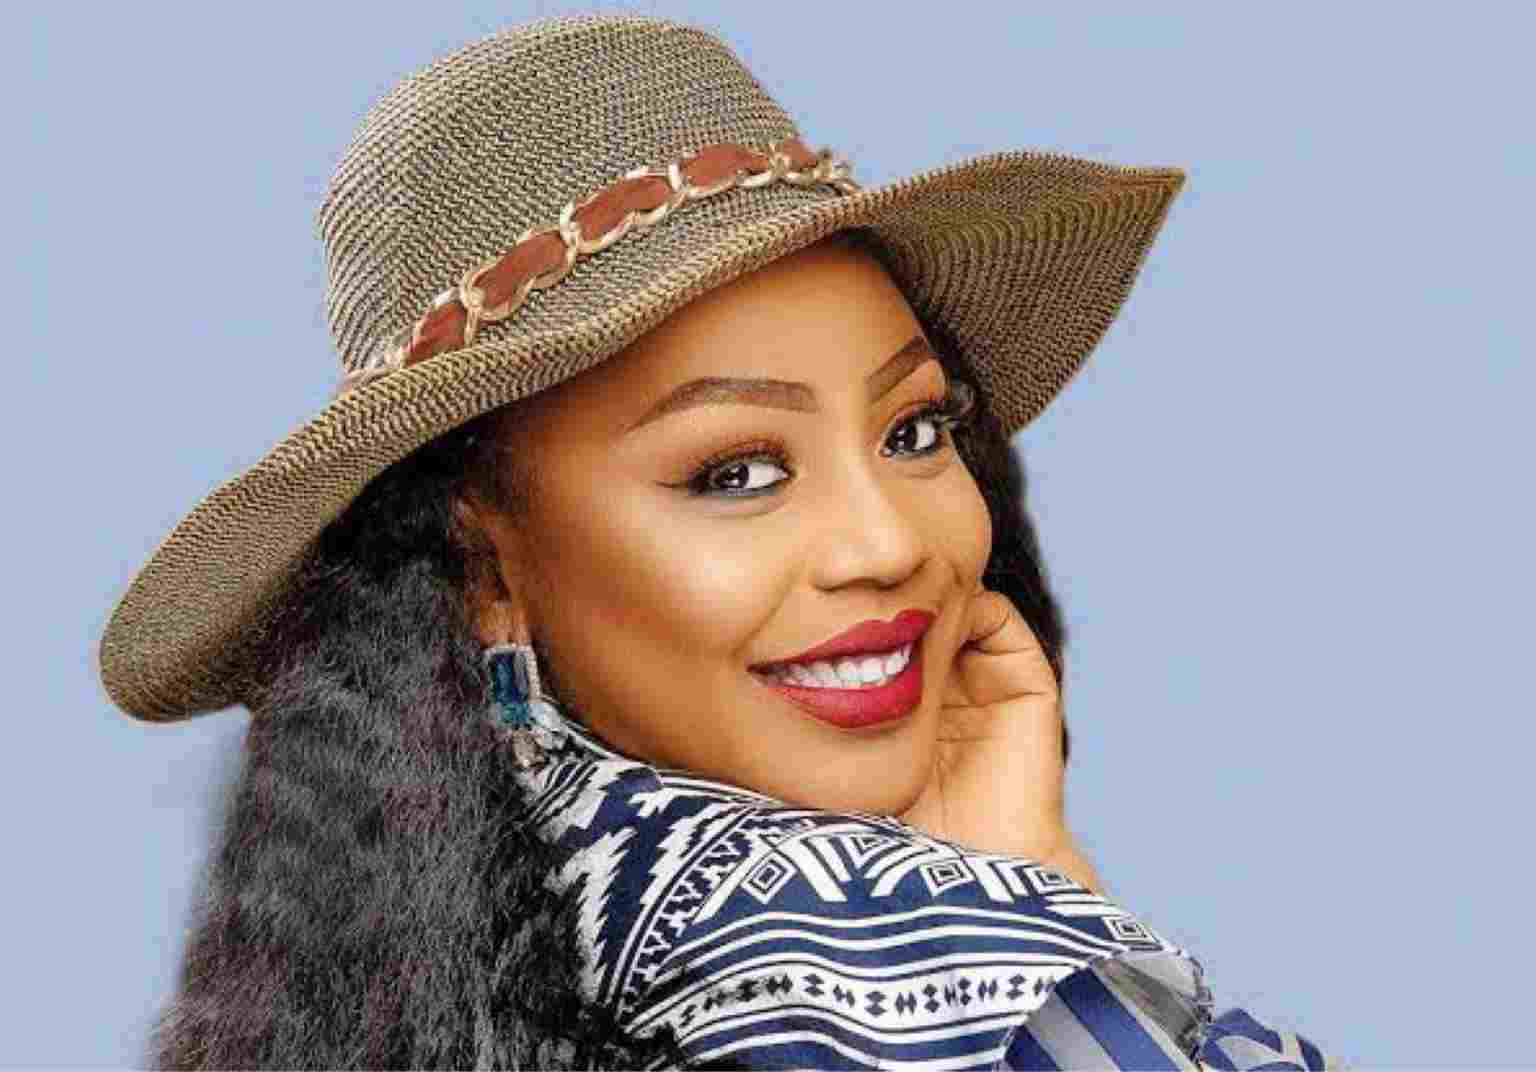 'Even If No One Asked You Out, Celebrate And Appreciate Yourself' – Ifu Ennada Tells Ladies